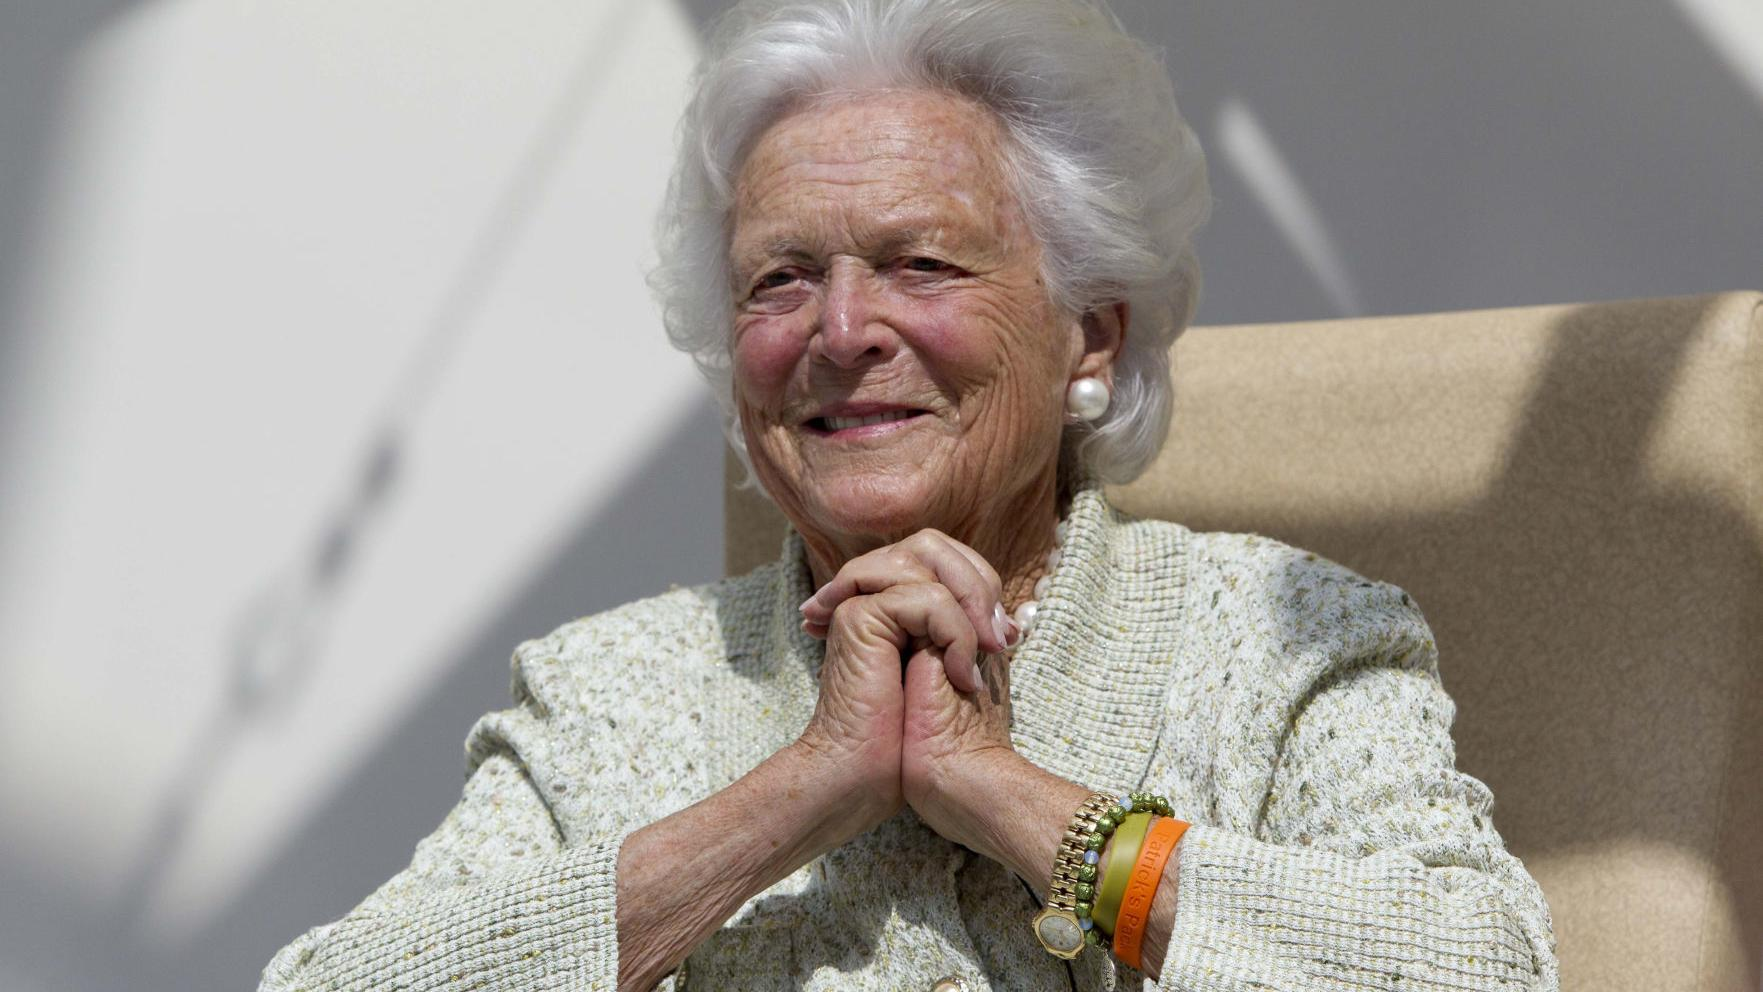 Remembering Barbara Bush, one year after her death